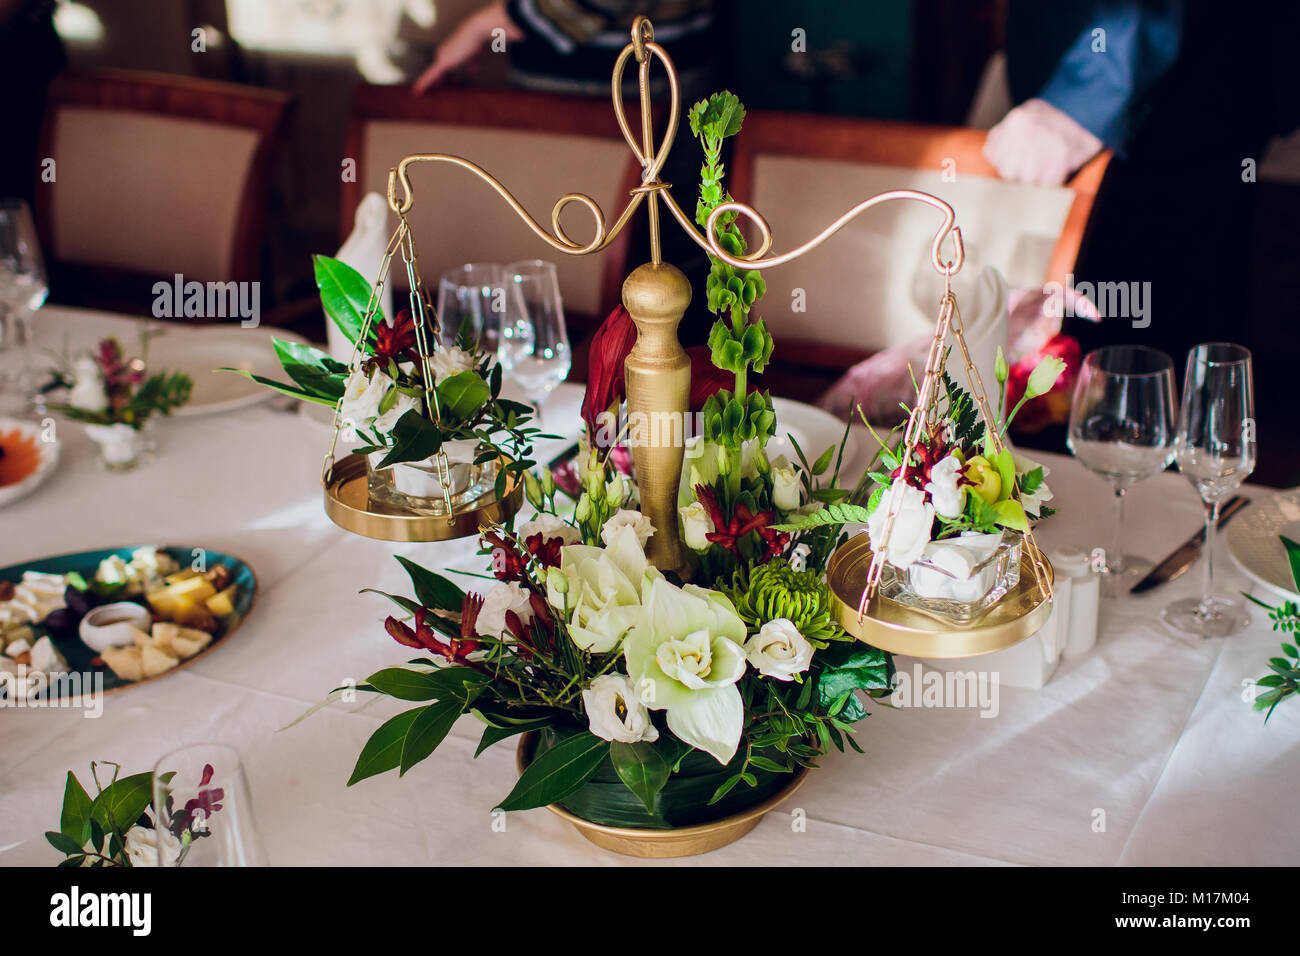 Wedding Reception Table Setting Aerial Top View Stock Photo ...